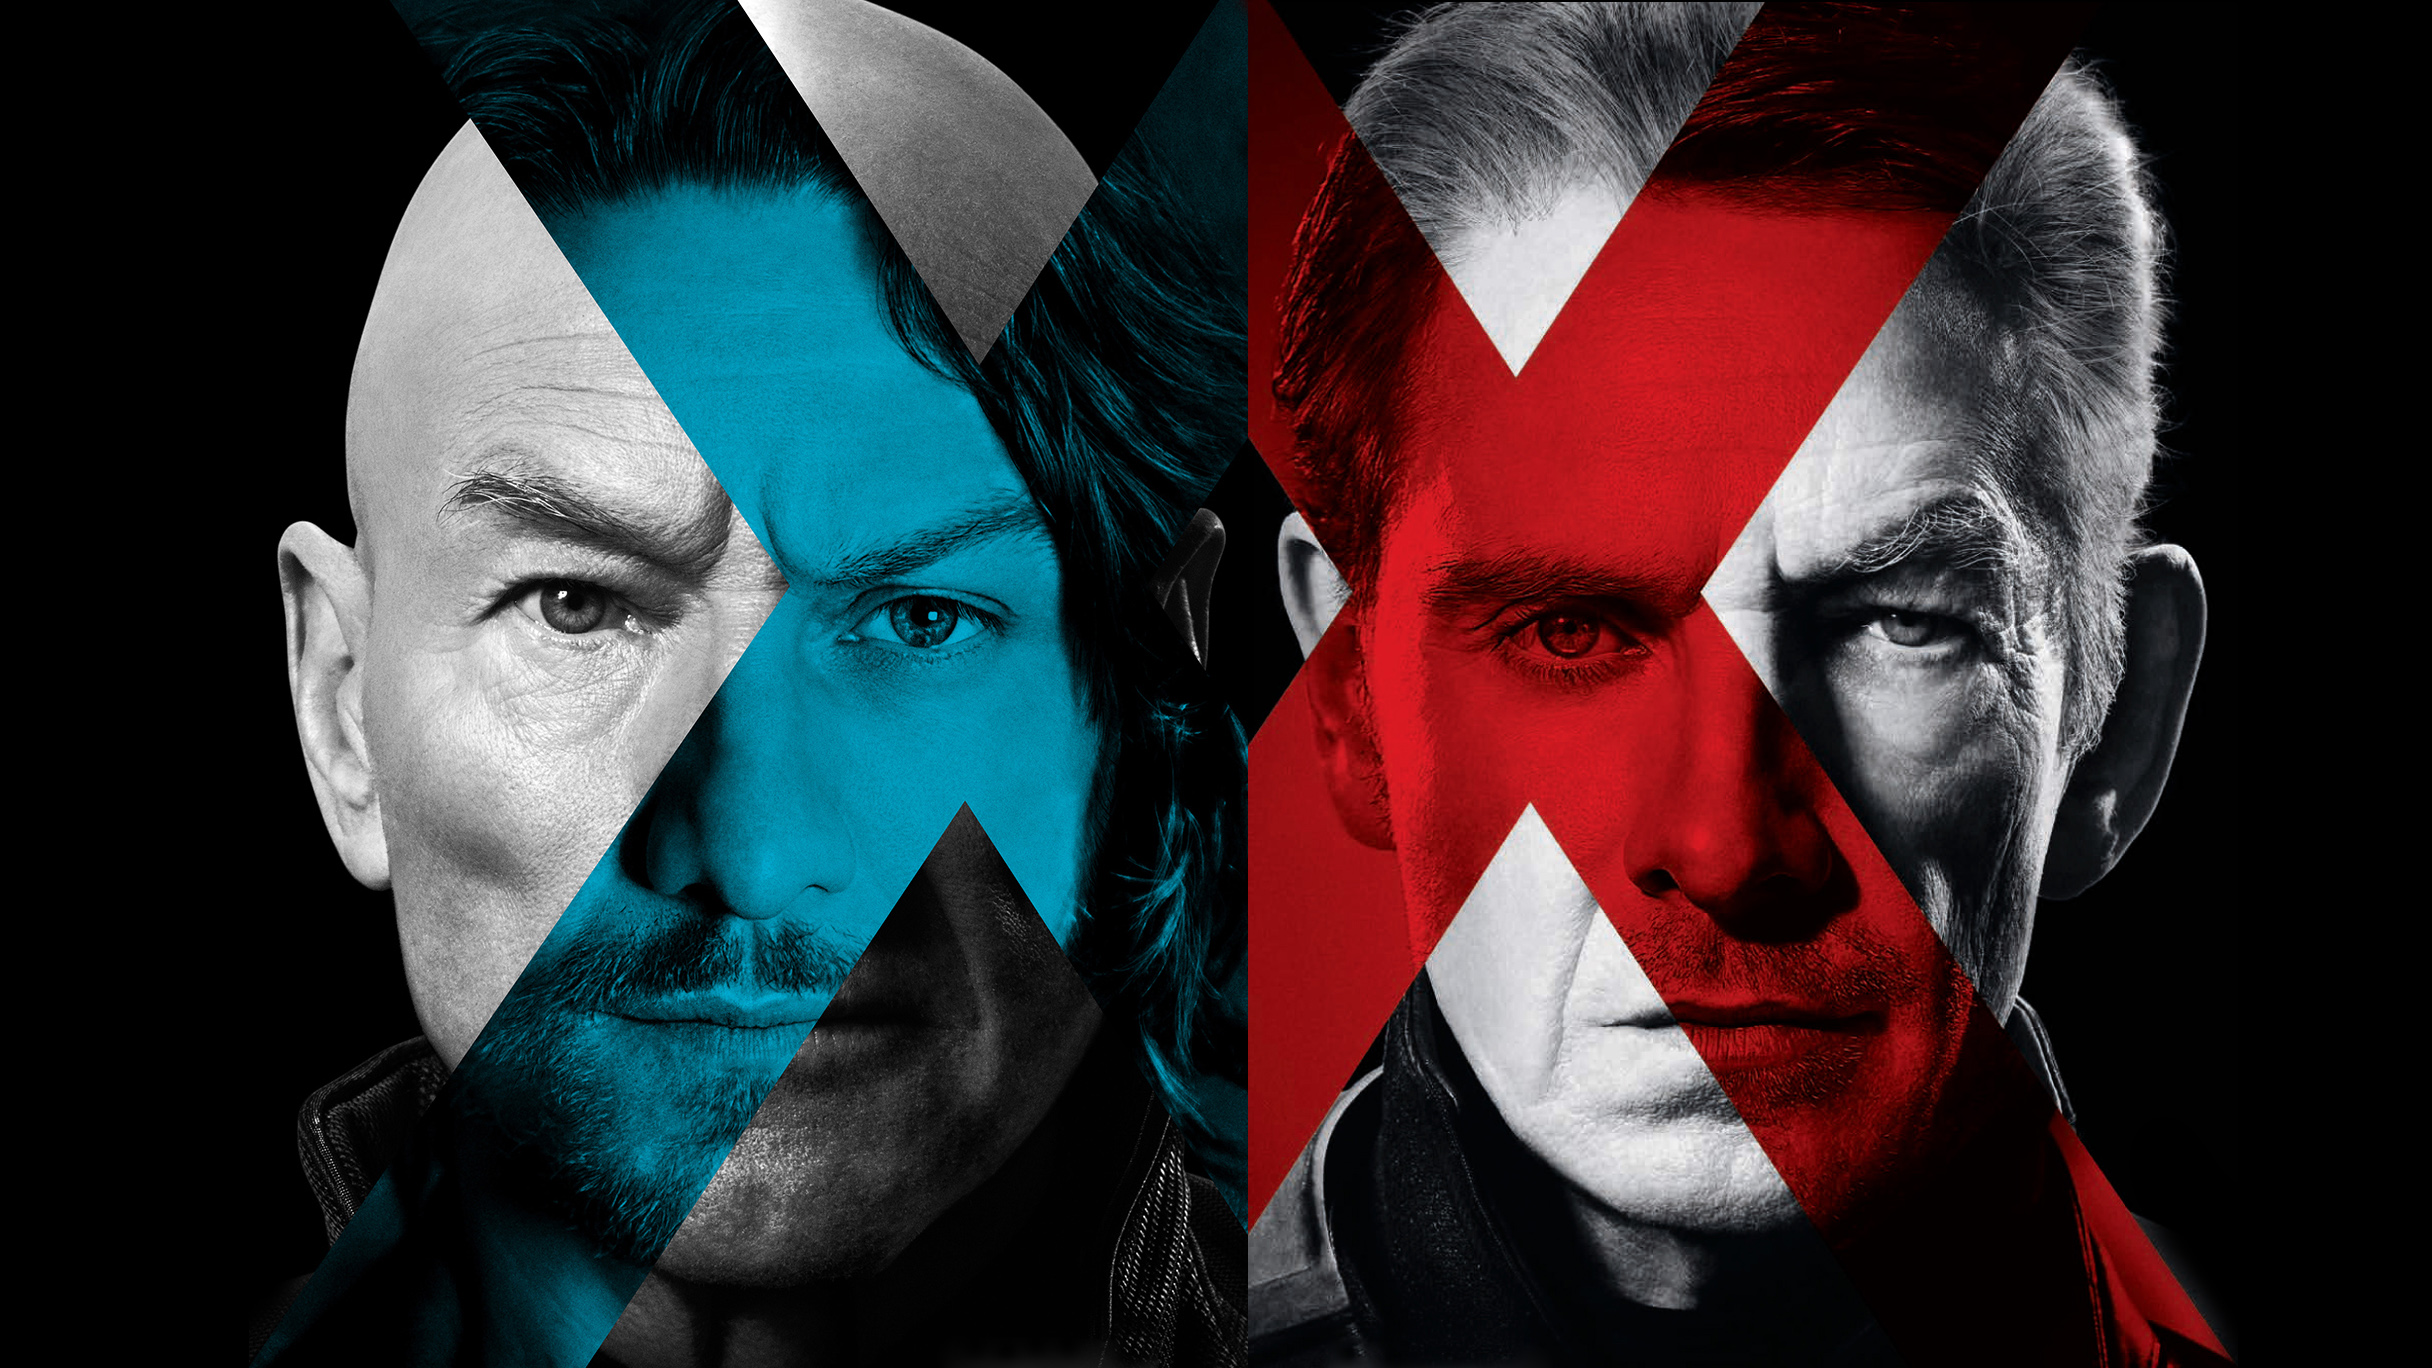 X Men Days Of Future Past two posters Movie Wallpapers 2432x1368